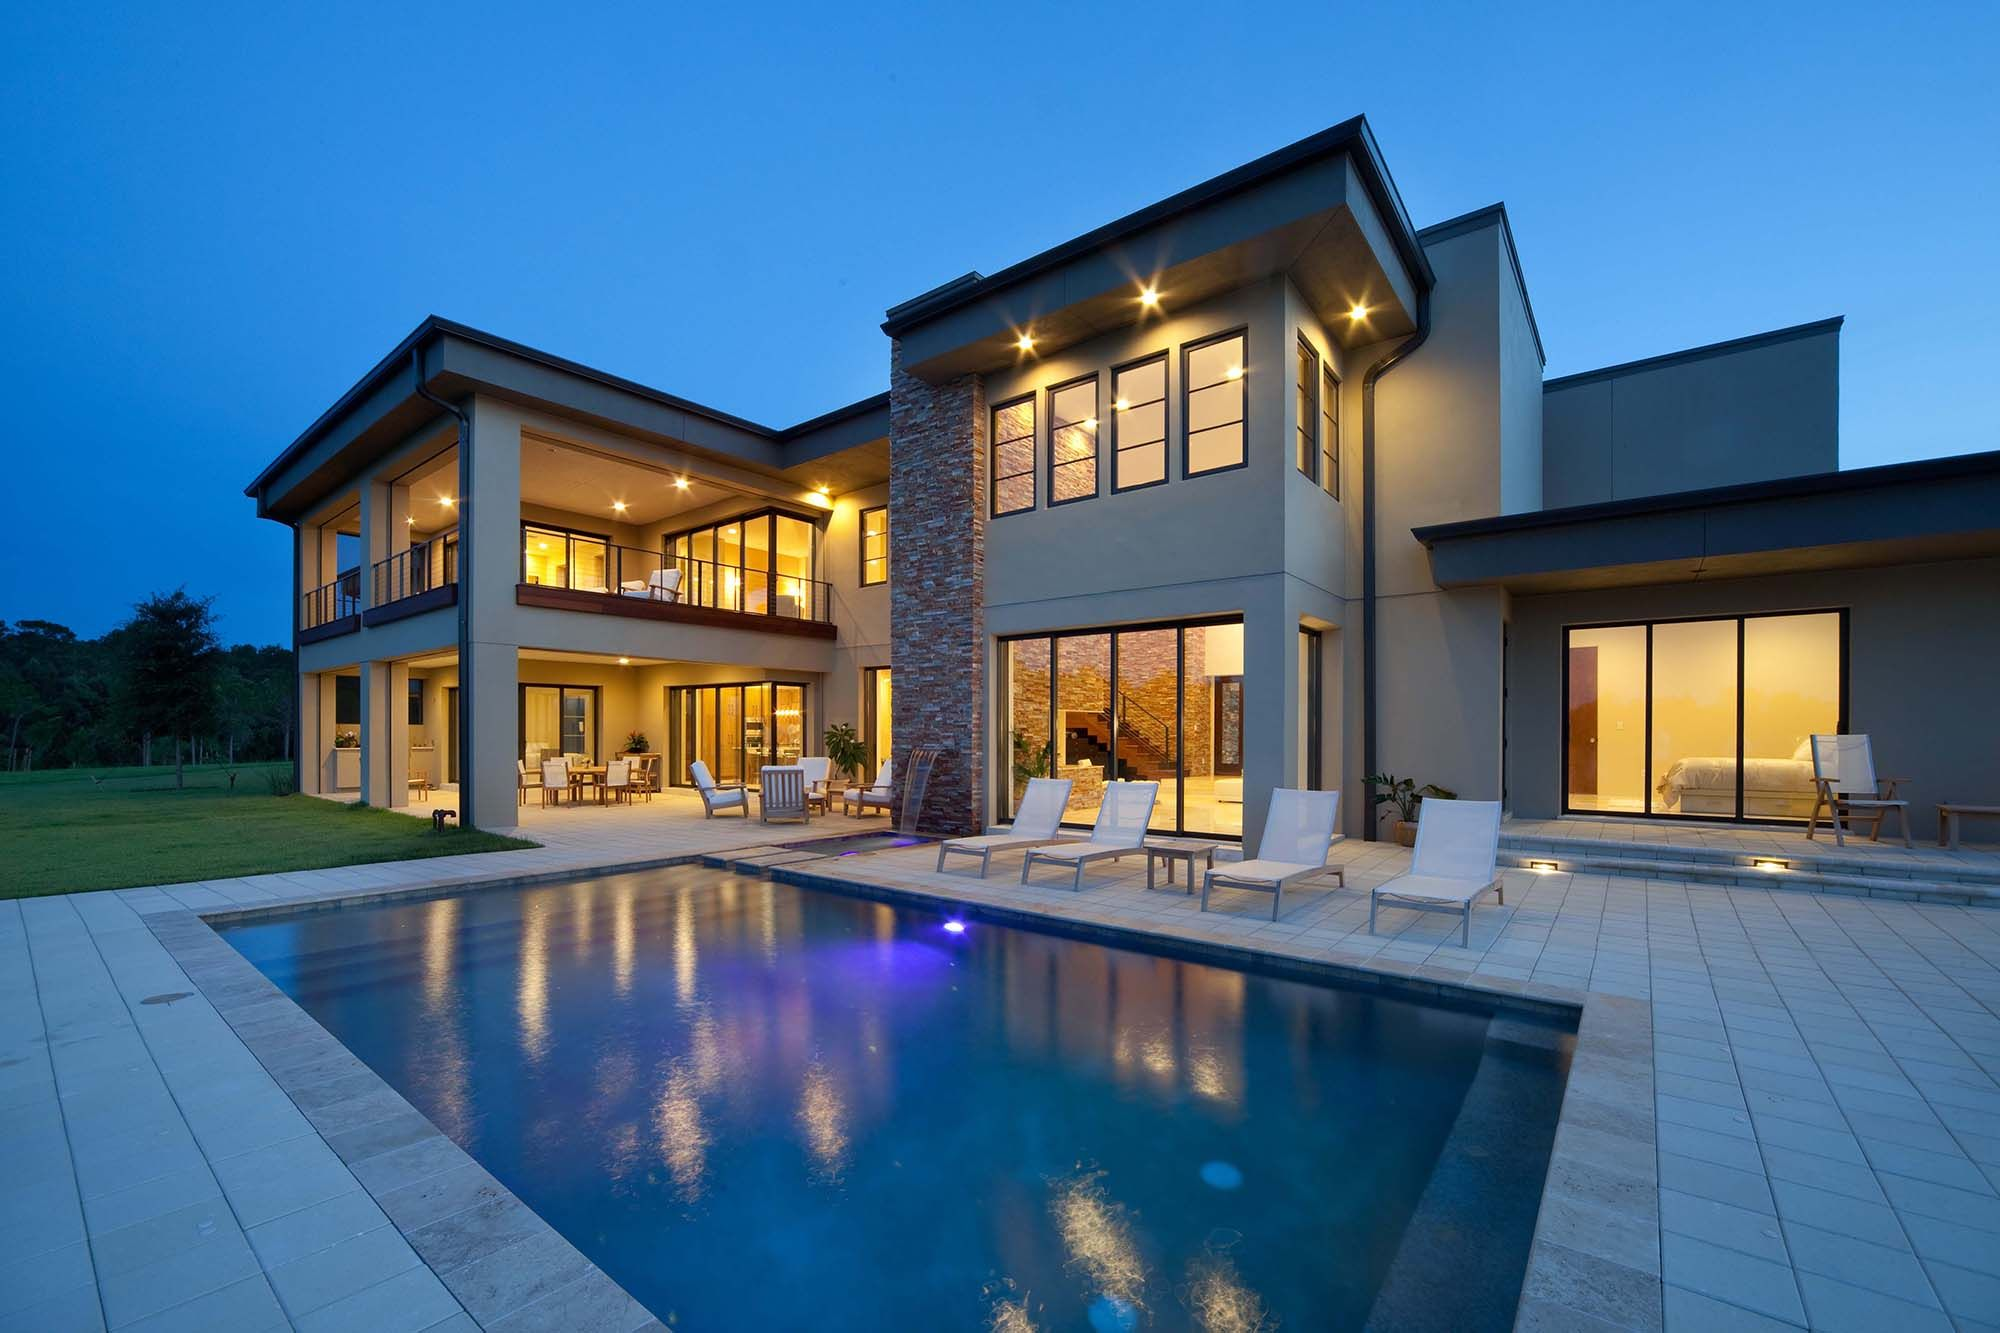 Modern Flat Roof Home Designs Luxury house designs